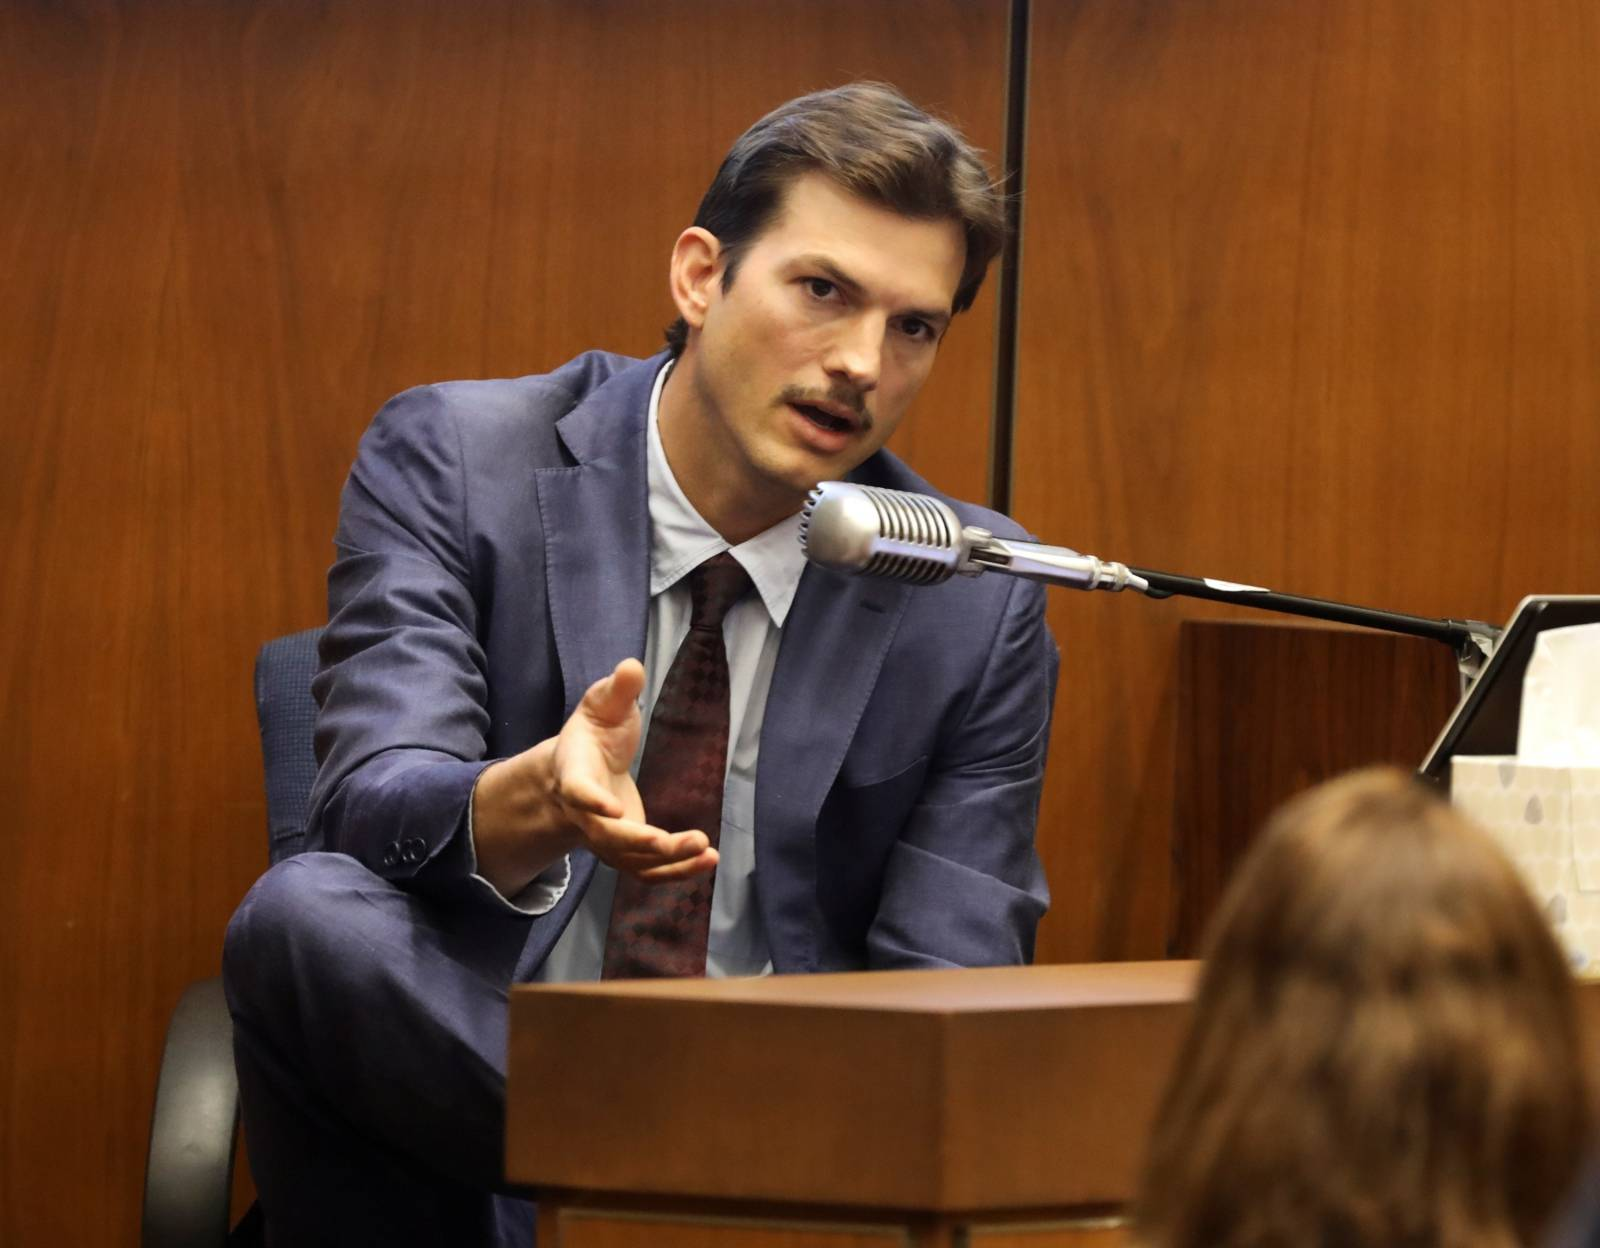 Actor Ashton Kutcher testifies at the murder trial of accused Serial killer Michael Thomas Gargiulo in Los Angeles